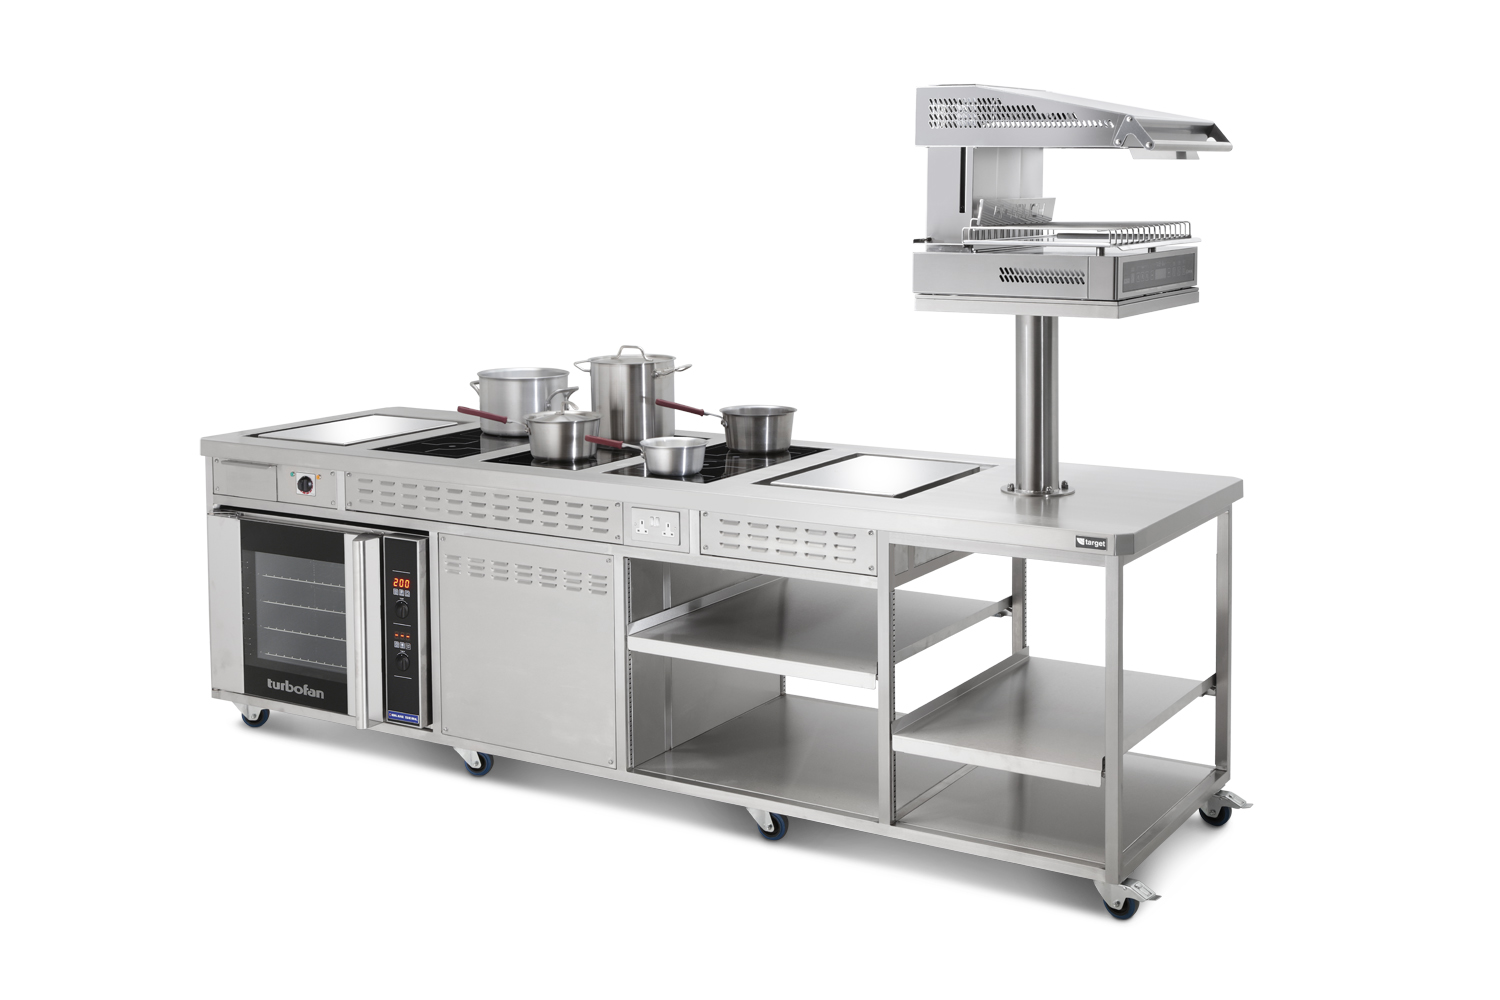 Large centre island unit grill right with pans.jpg